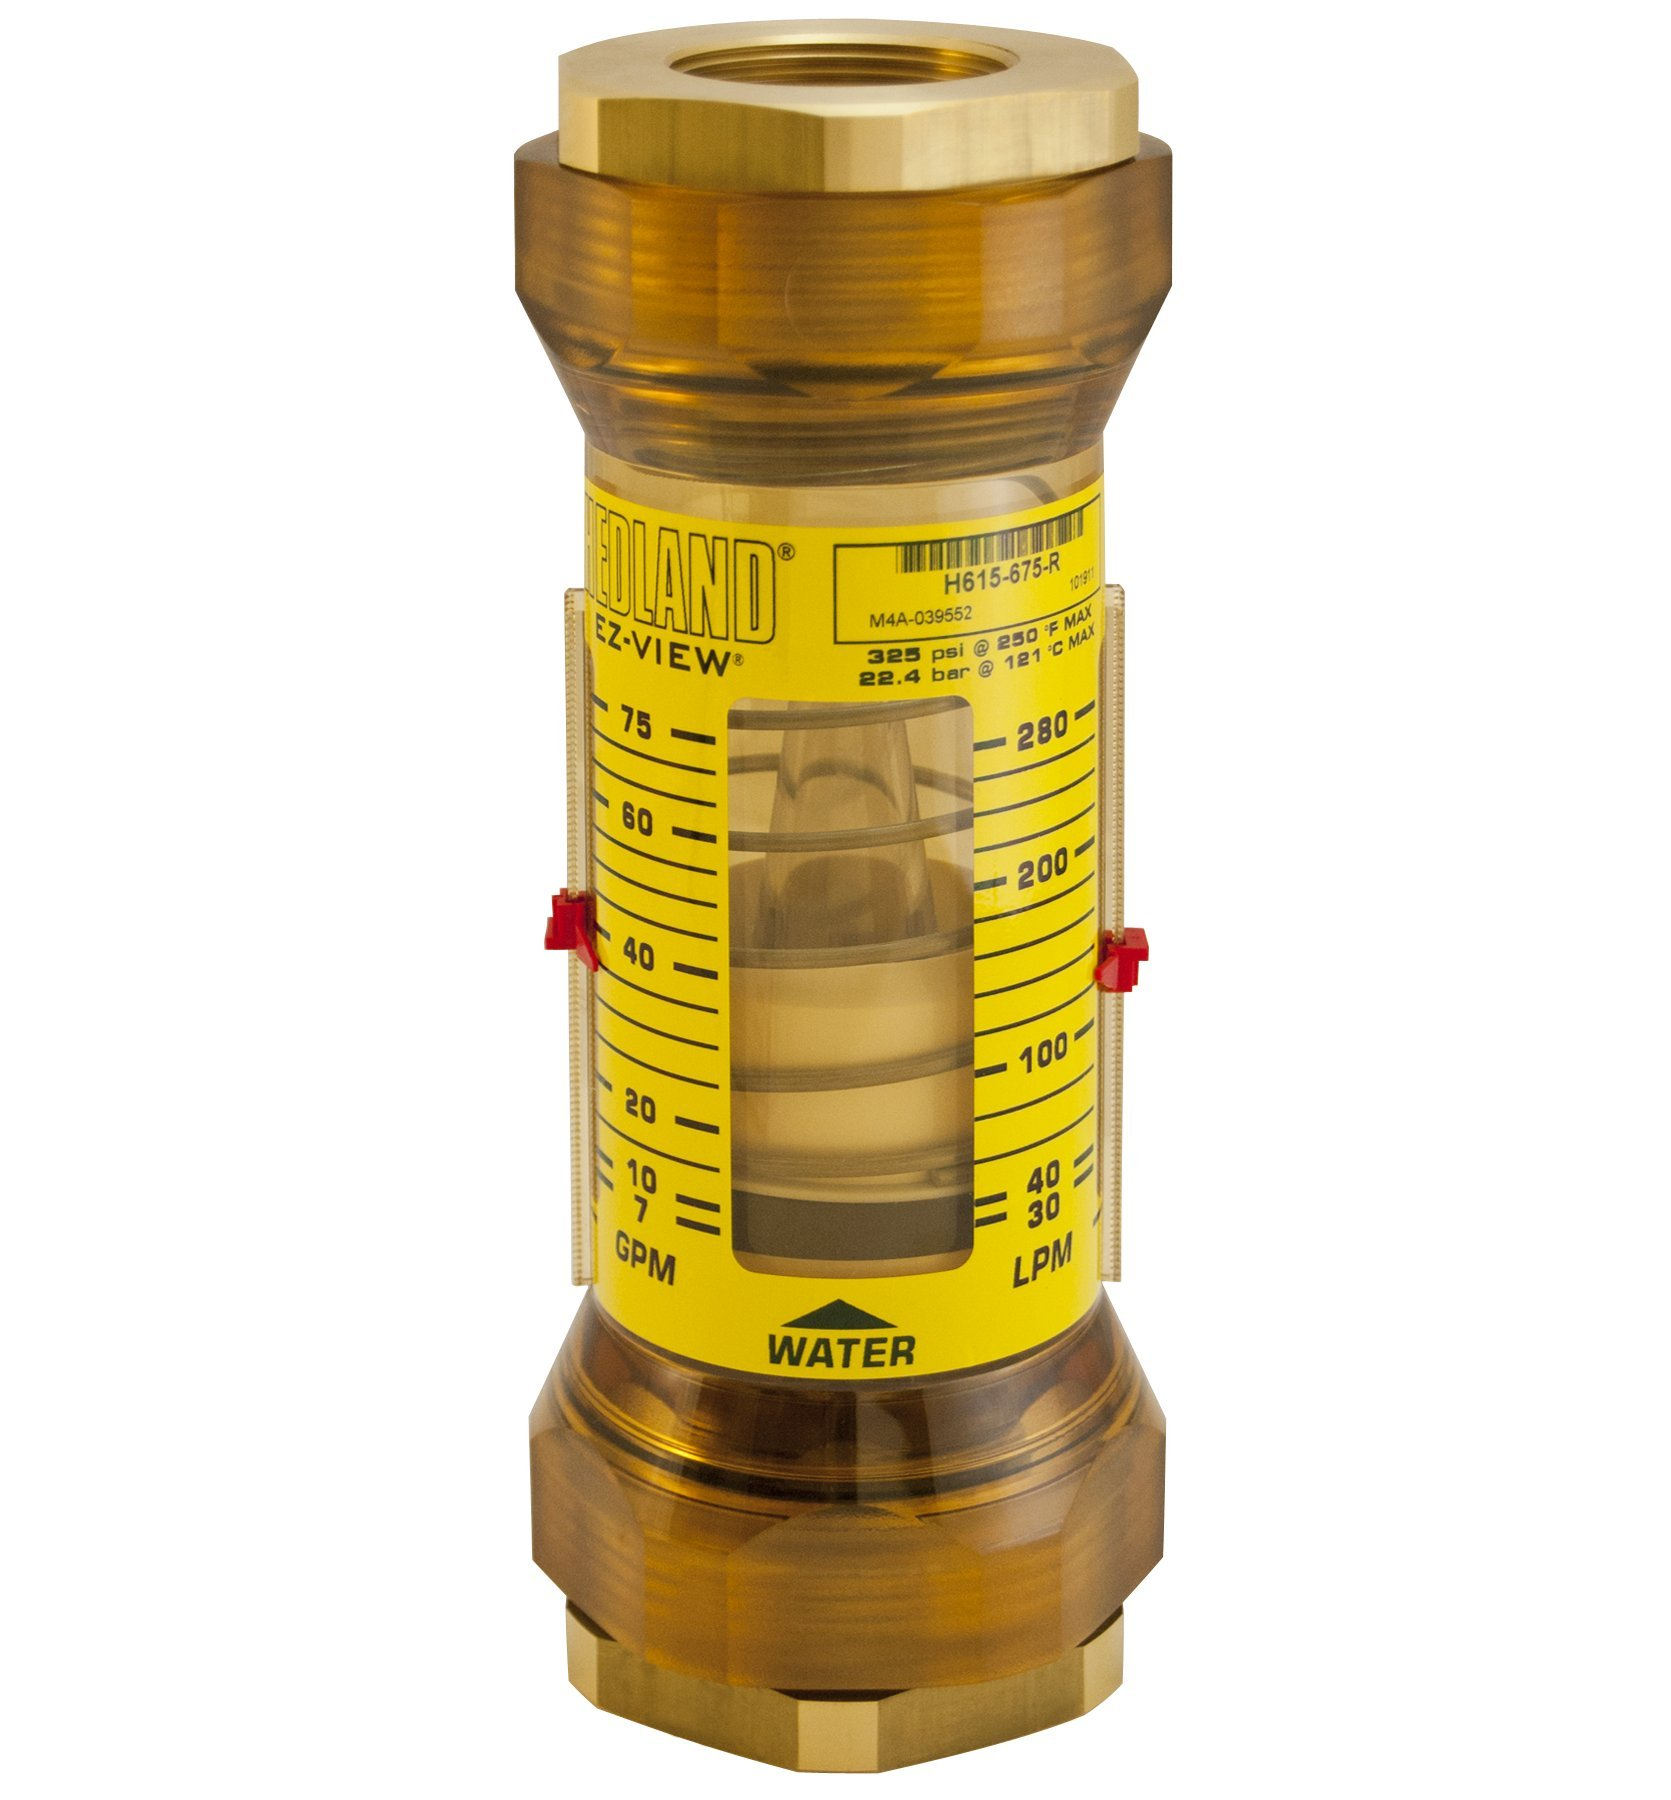 Hedland H617-650-R EZ-View Flowmeter With Sensor, Polyphenylsulfone, For Use With Water, 20.0 to 190.0 lpm Flow Range, 2'' NPT Female